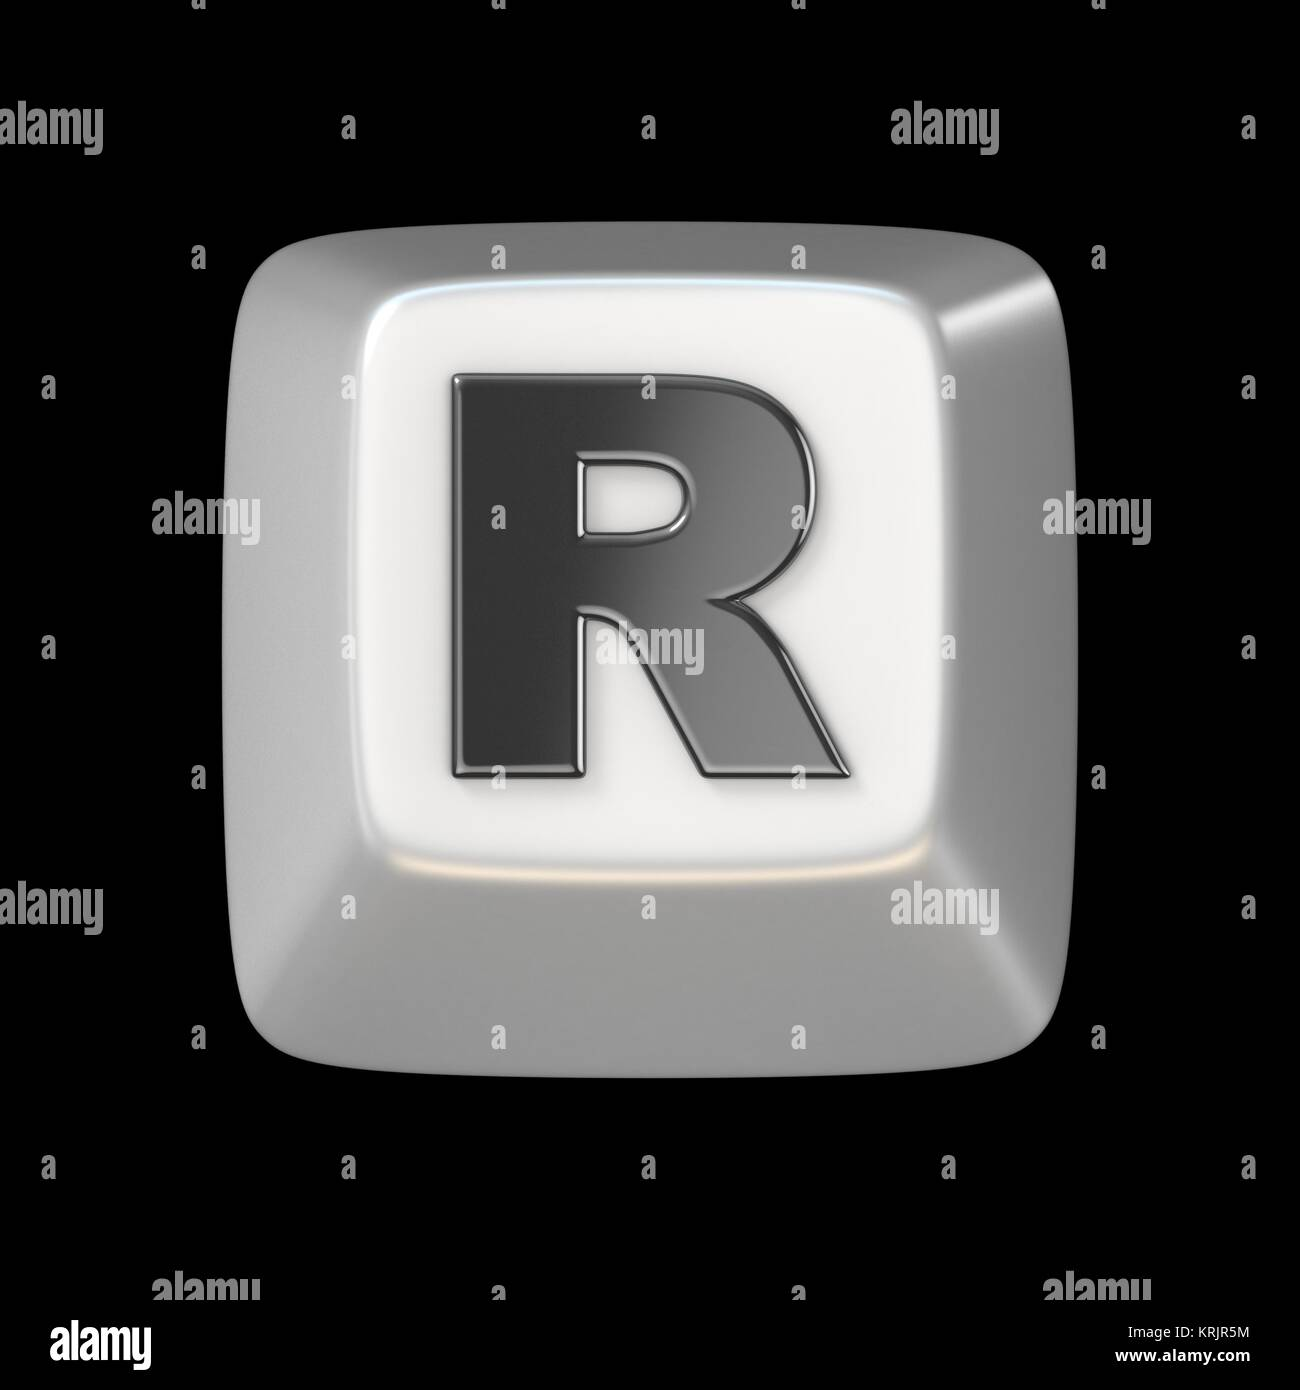 Computer Keyboard Key Font Letter R 3d Stock Photo 169443728 Alamy